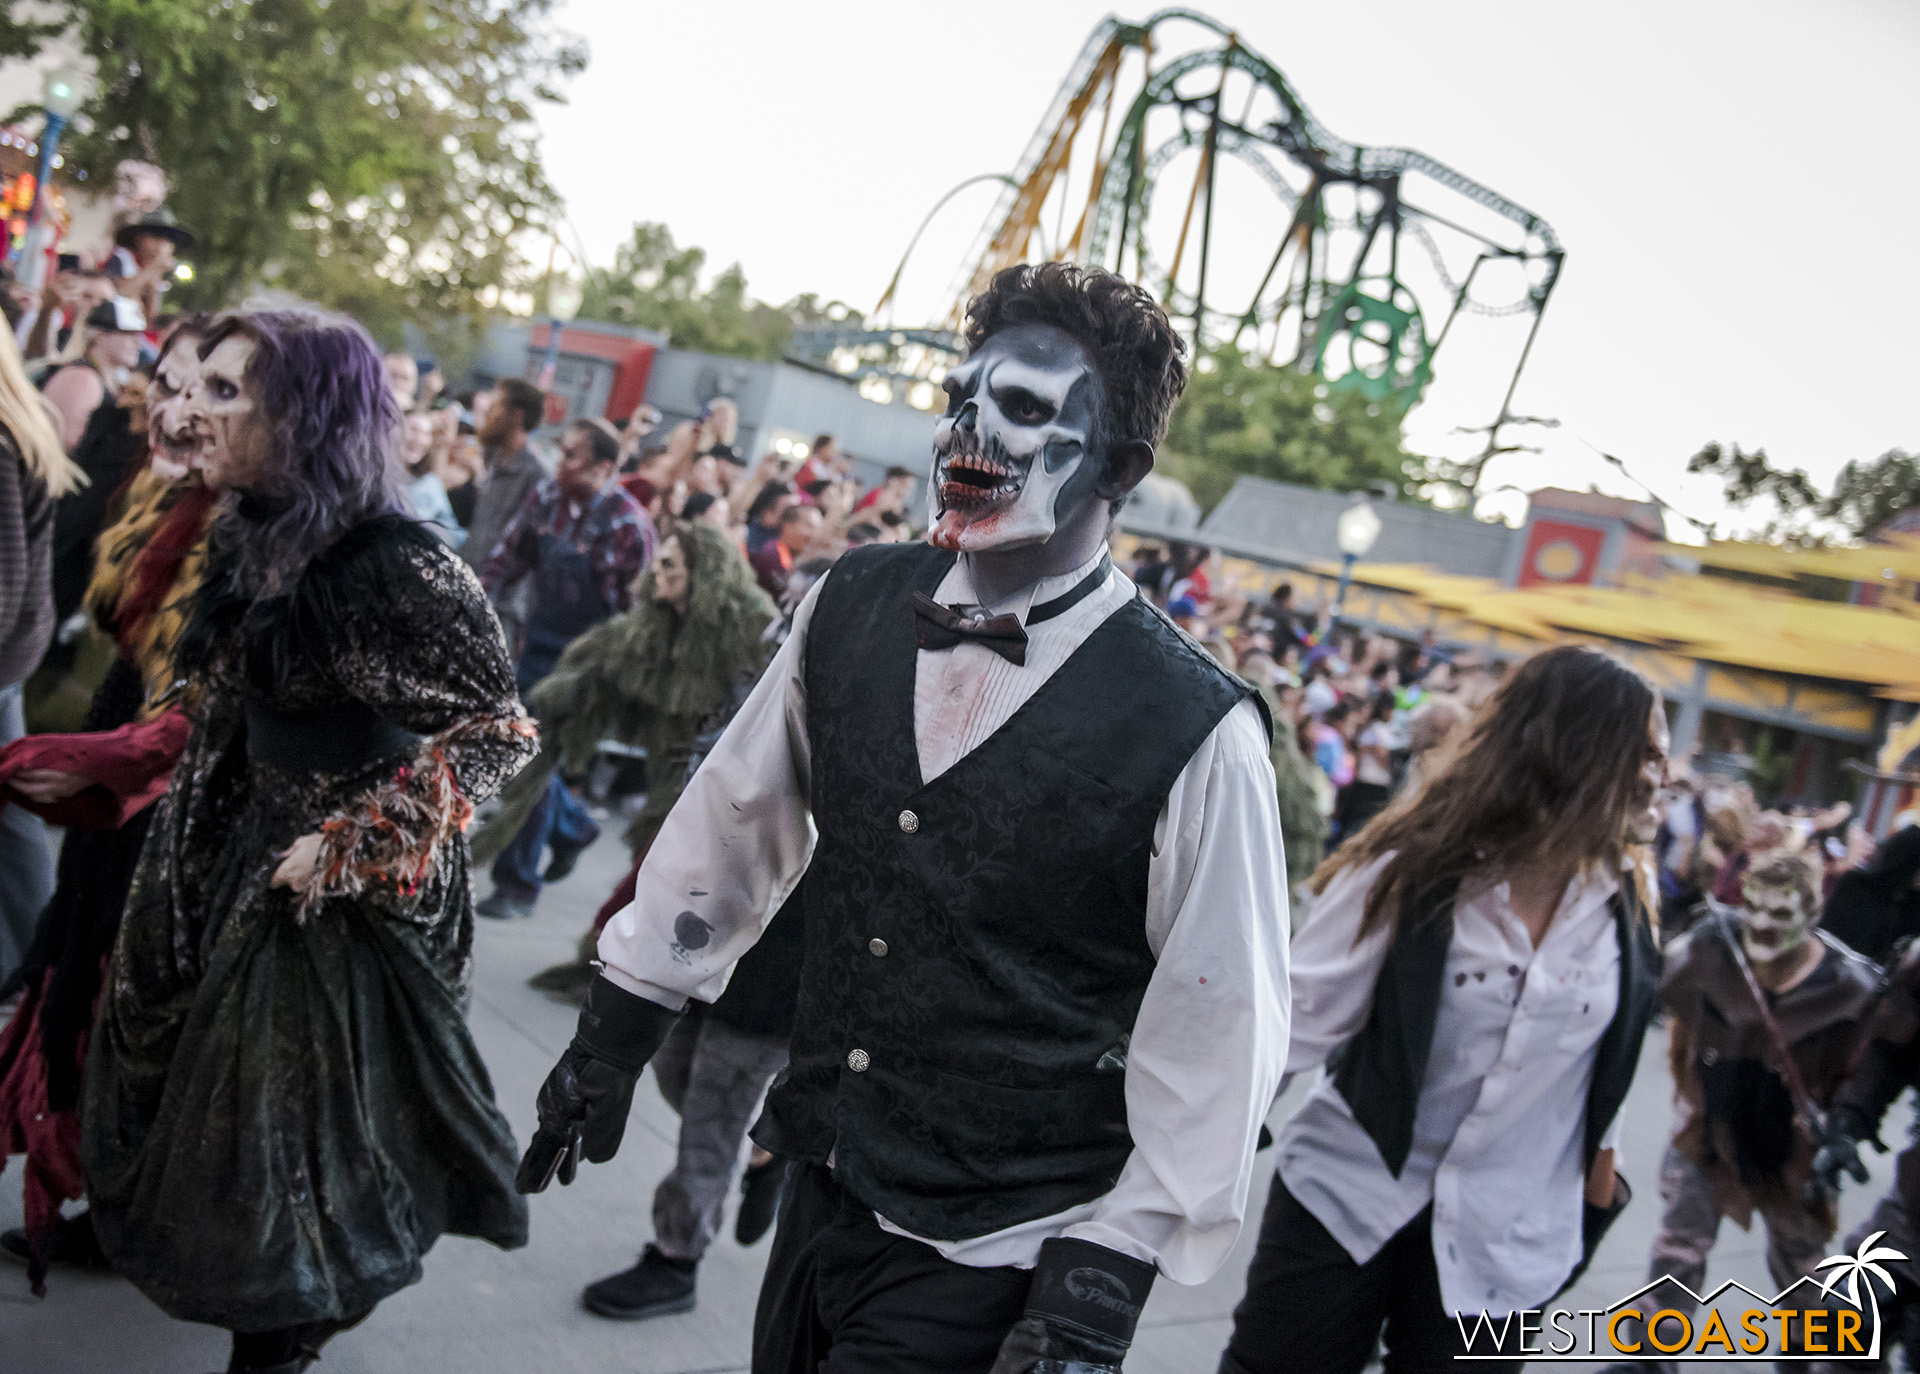 Much as they will at the end of the night, monsters of different scare zones start off together as they emerge.